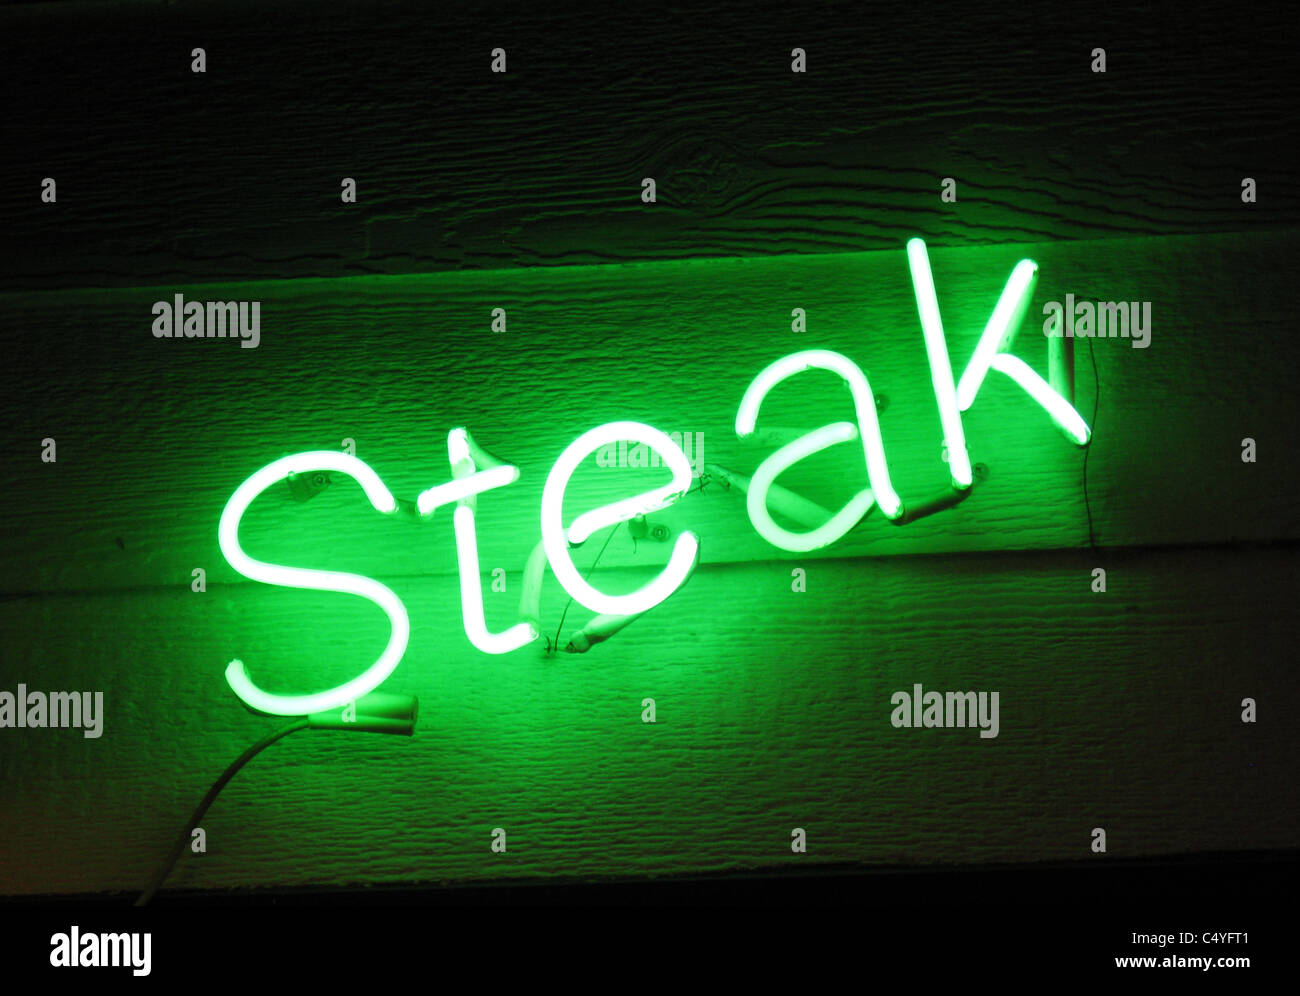 NEON SIGN - Steak - Stock Image